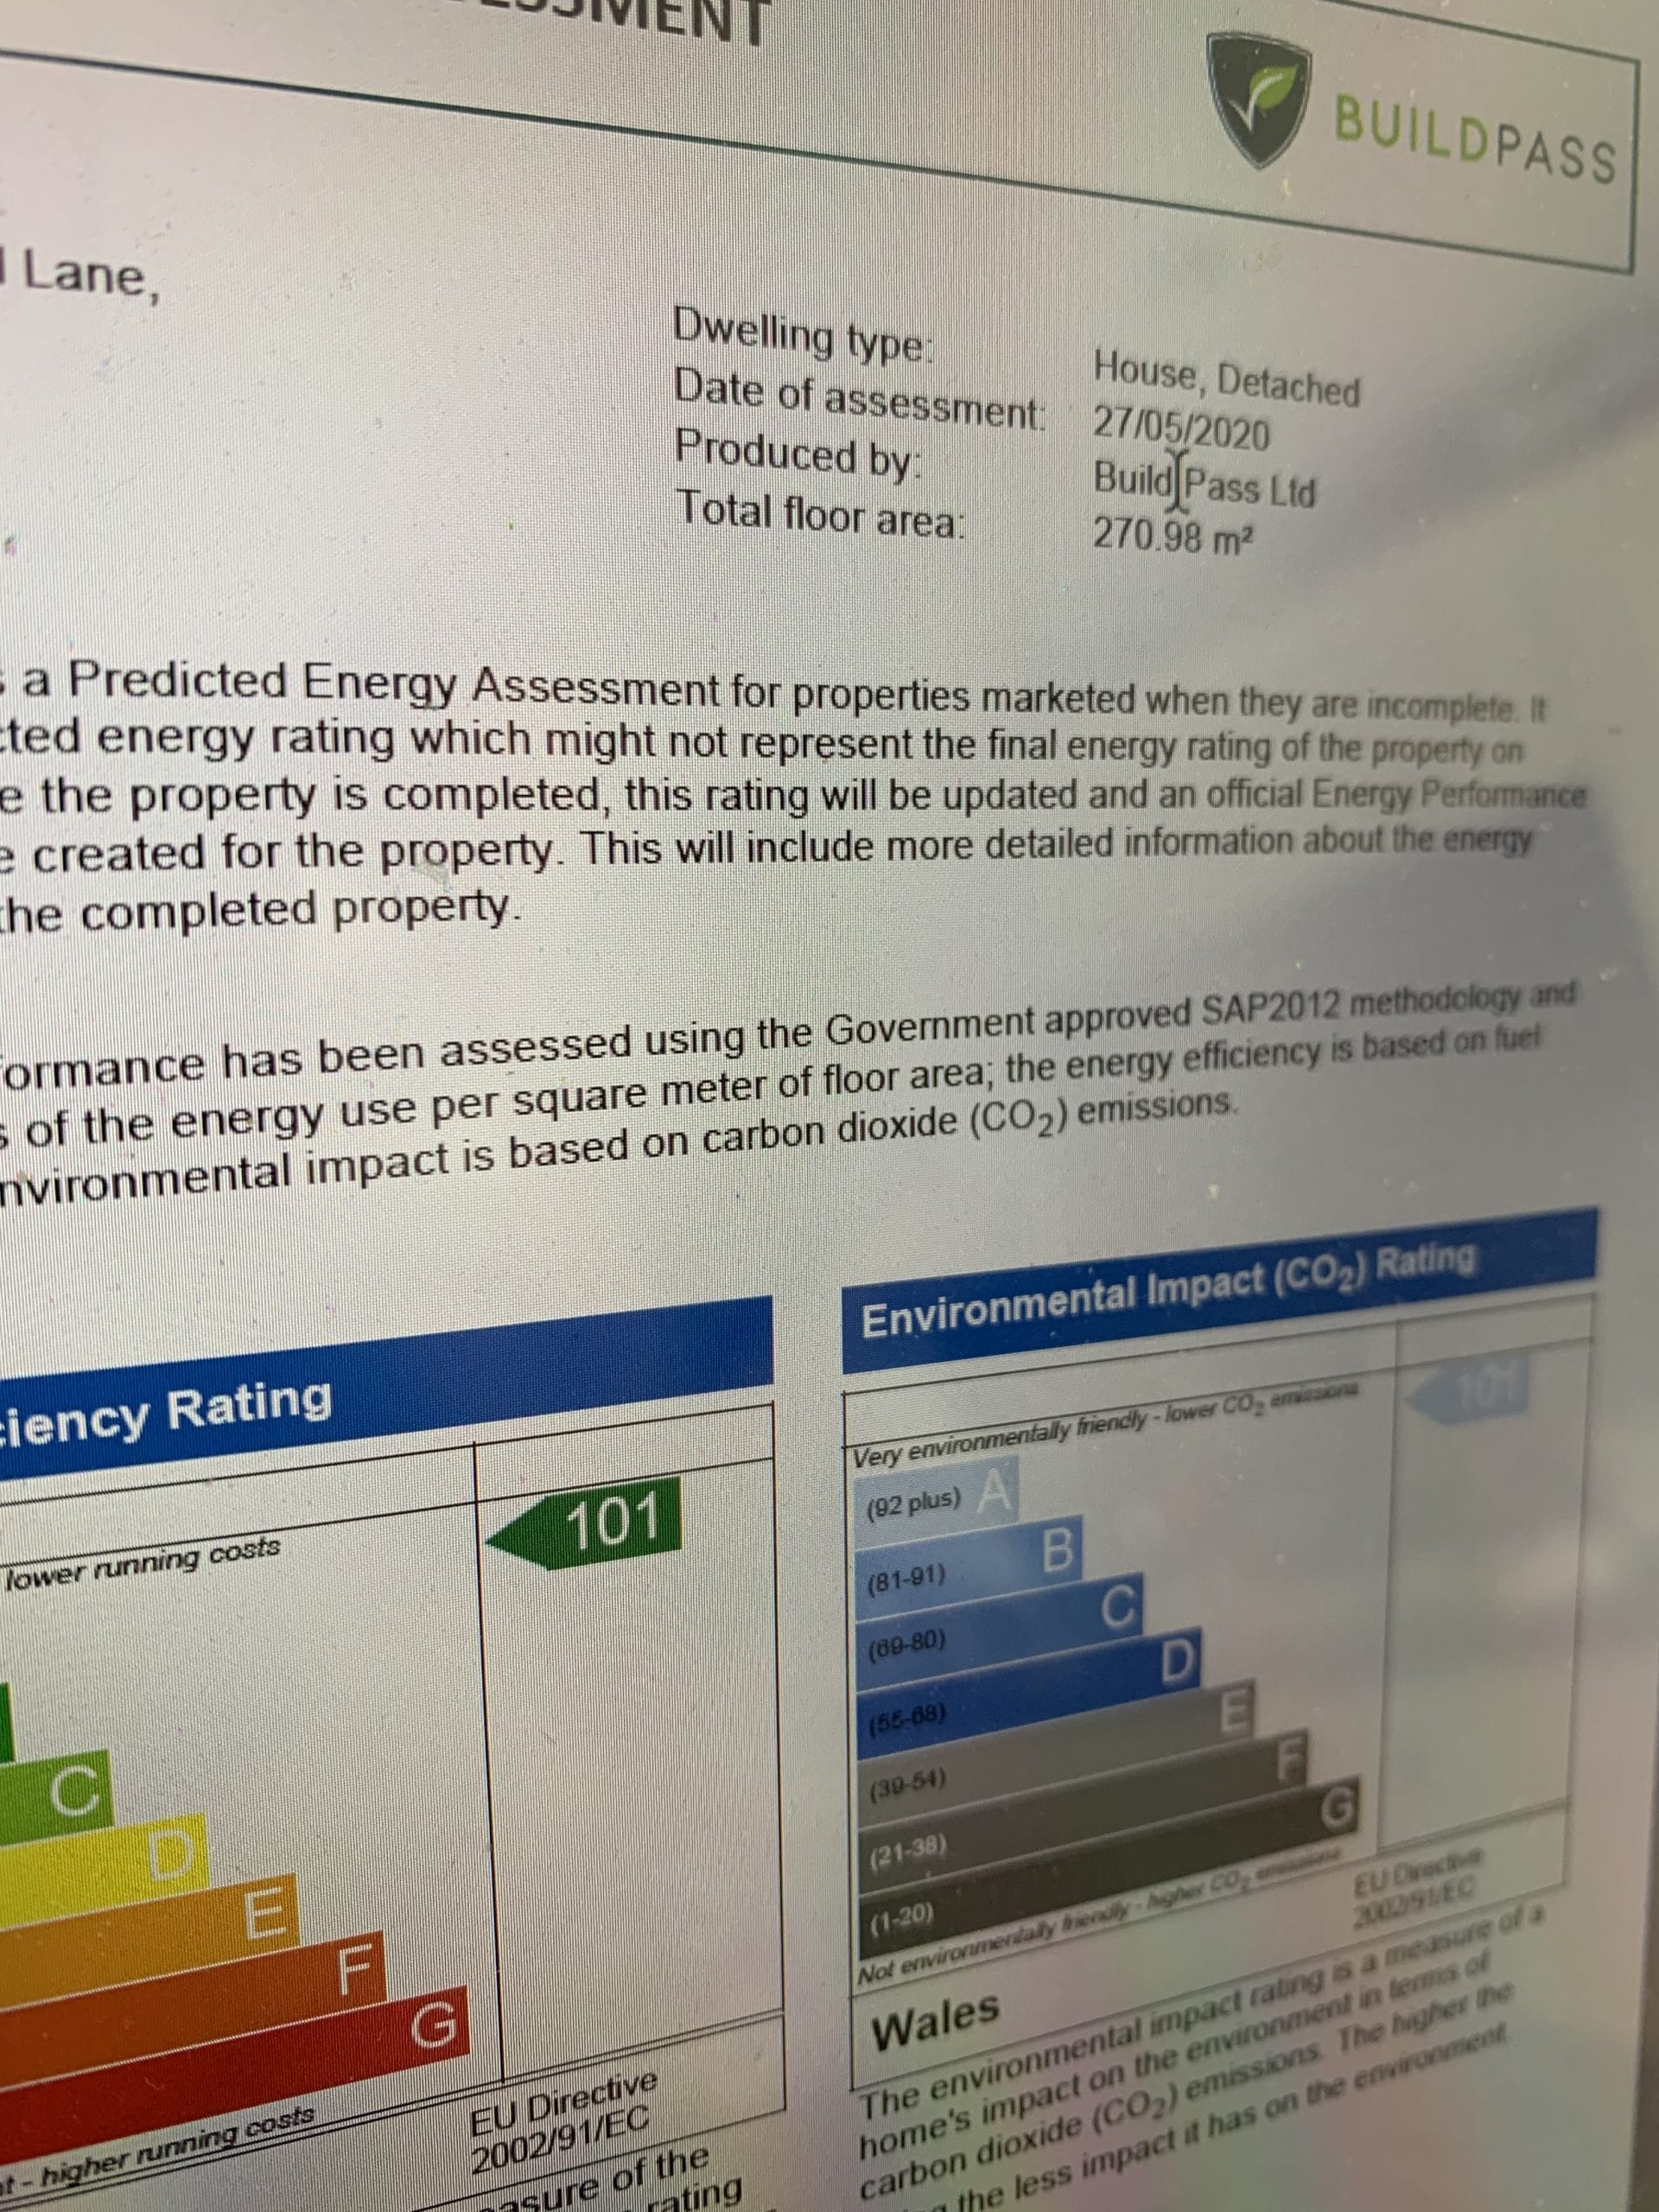 Energy Performance Certificate and SAP Calculations